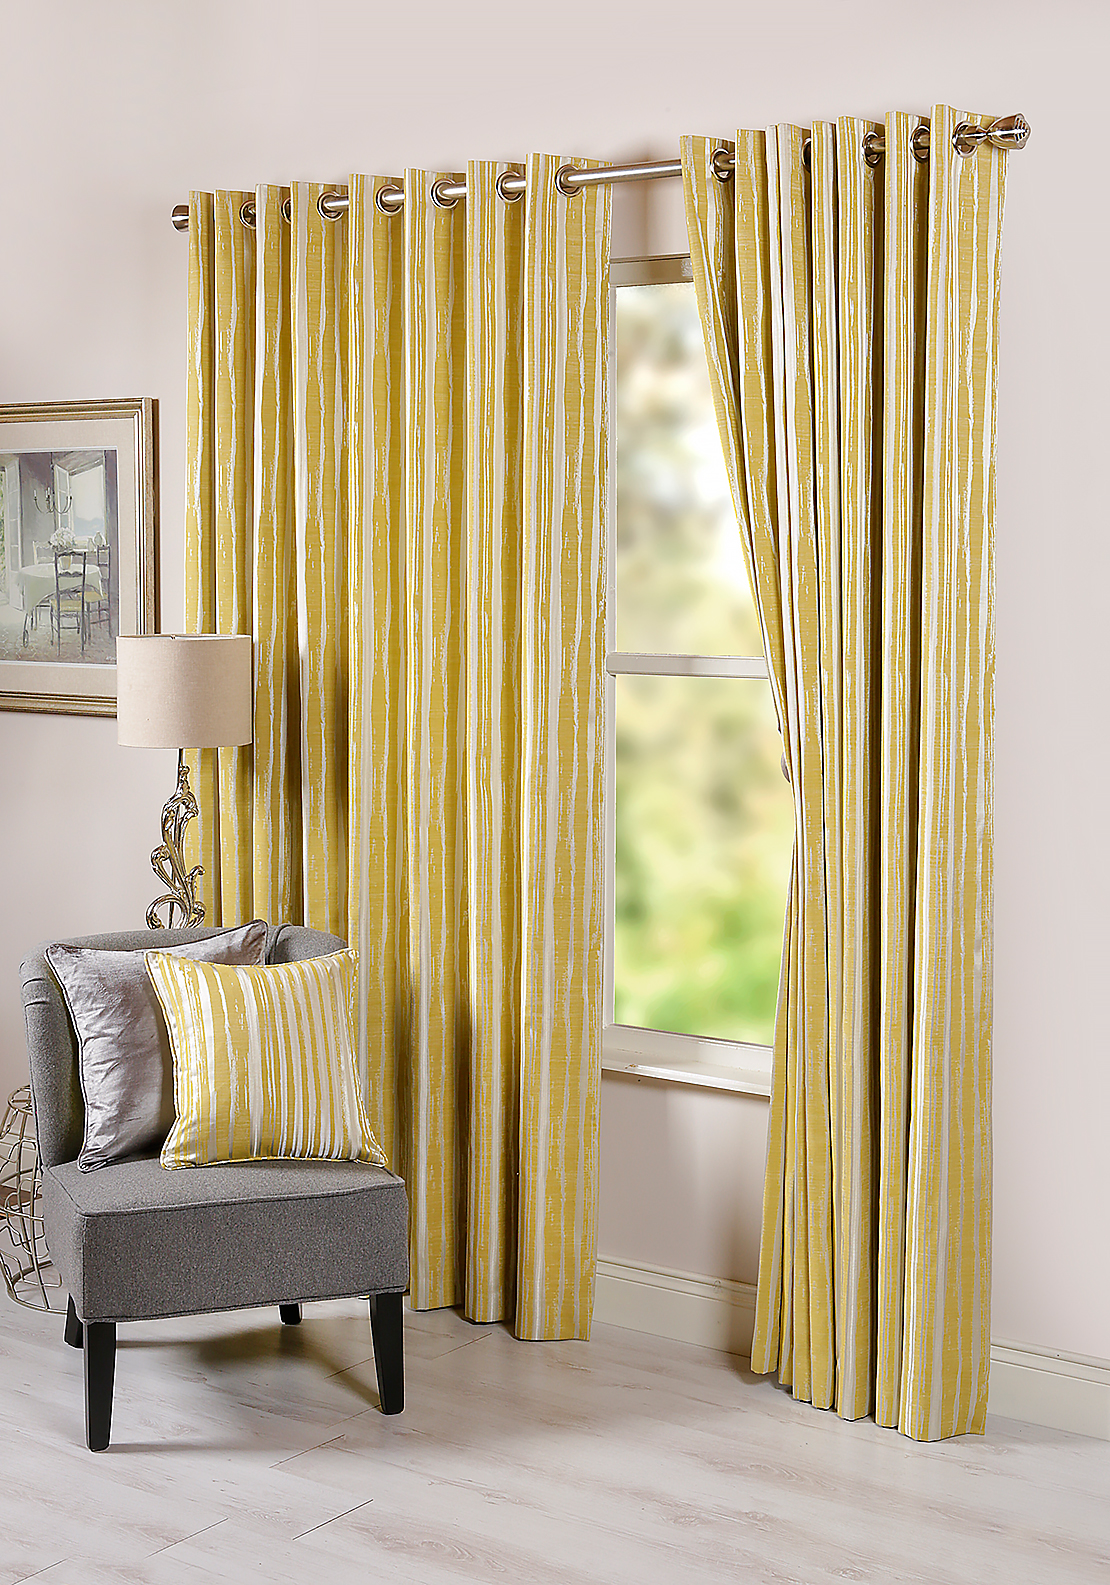 "Scatterbox Dawn Abstract Striped Fully Lined Eyelet Curtains 110 x 90"", Yellow"